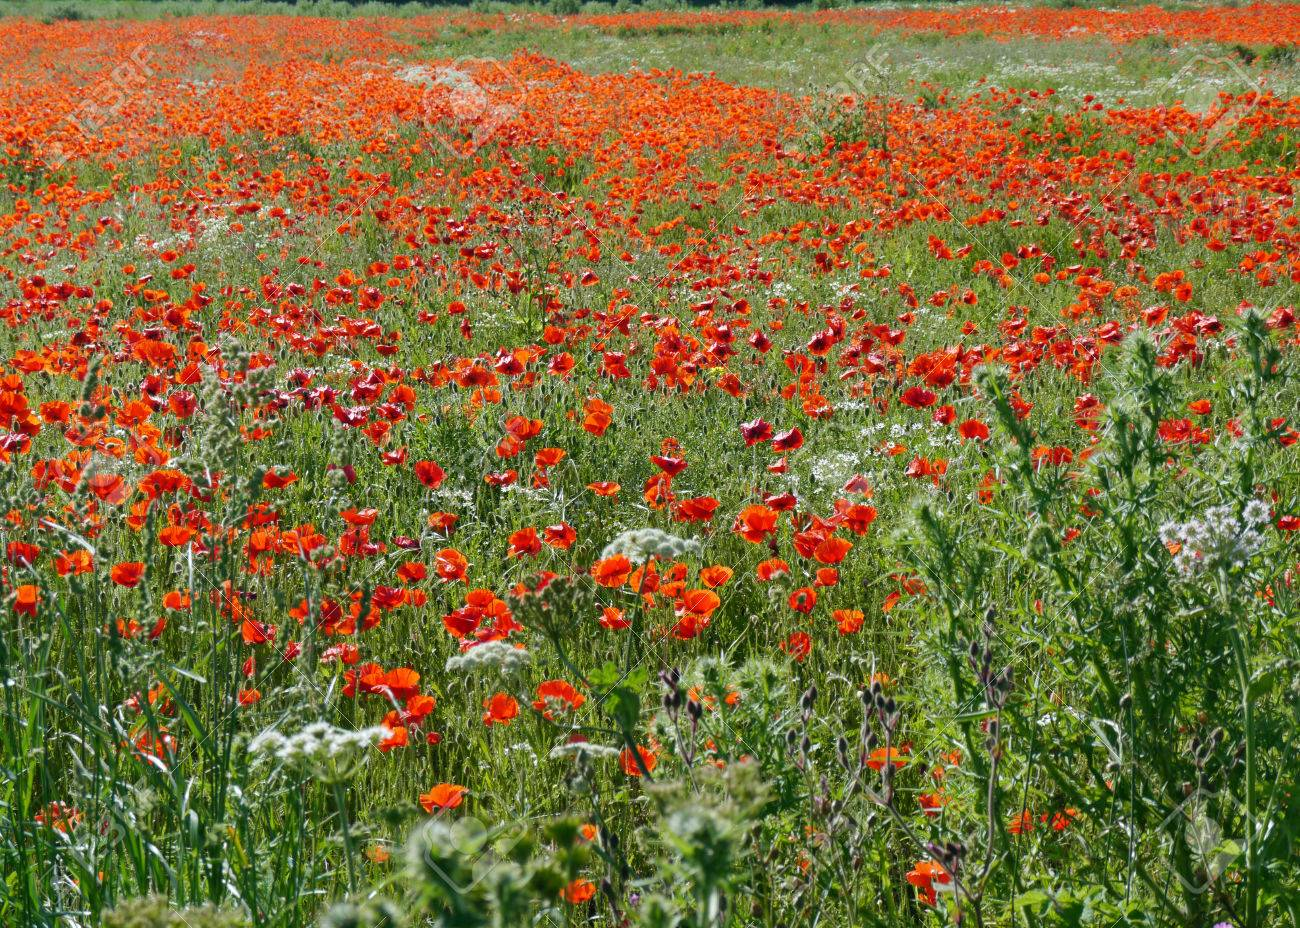 A meadow full of poppies and grasses in rural English countryside Standard-Bild - 81777942